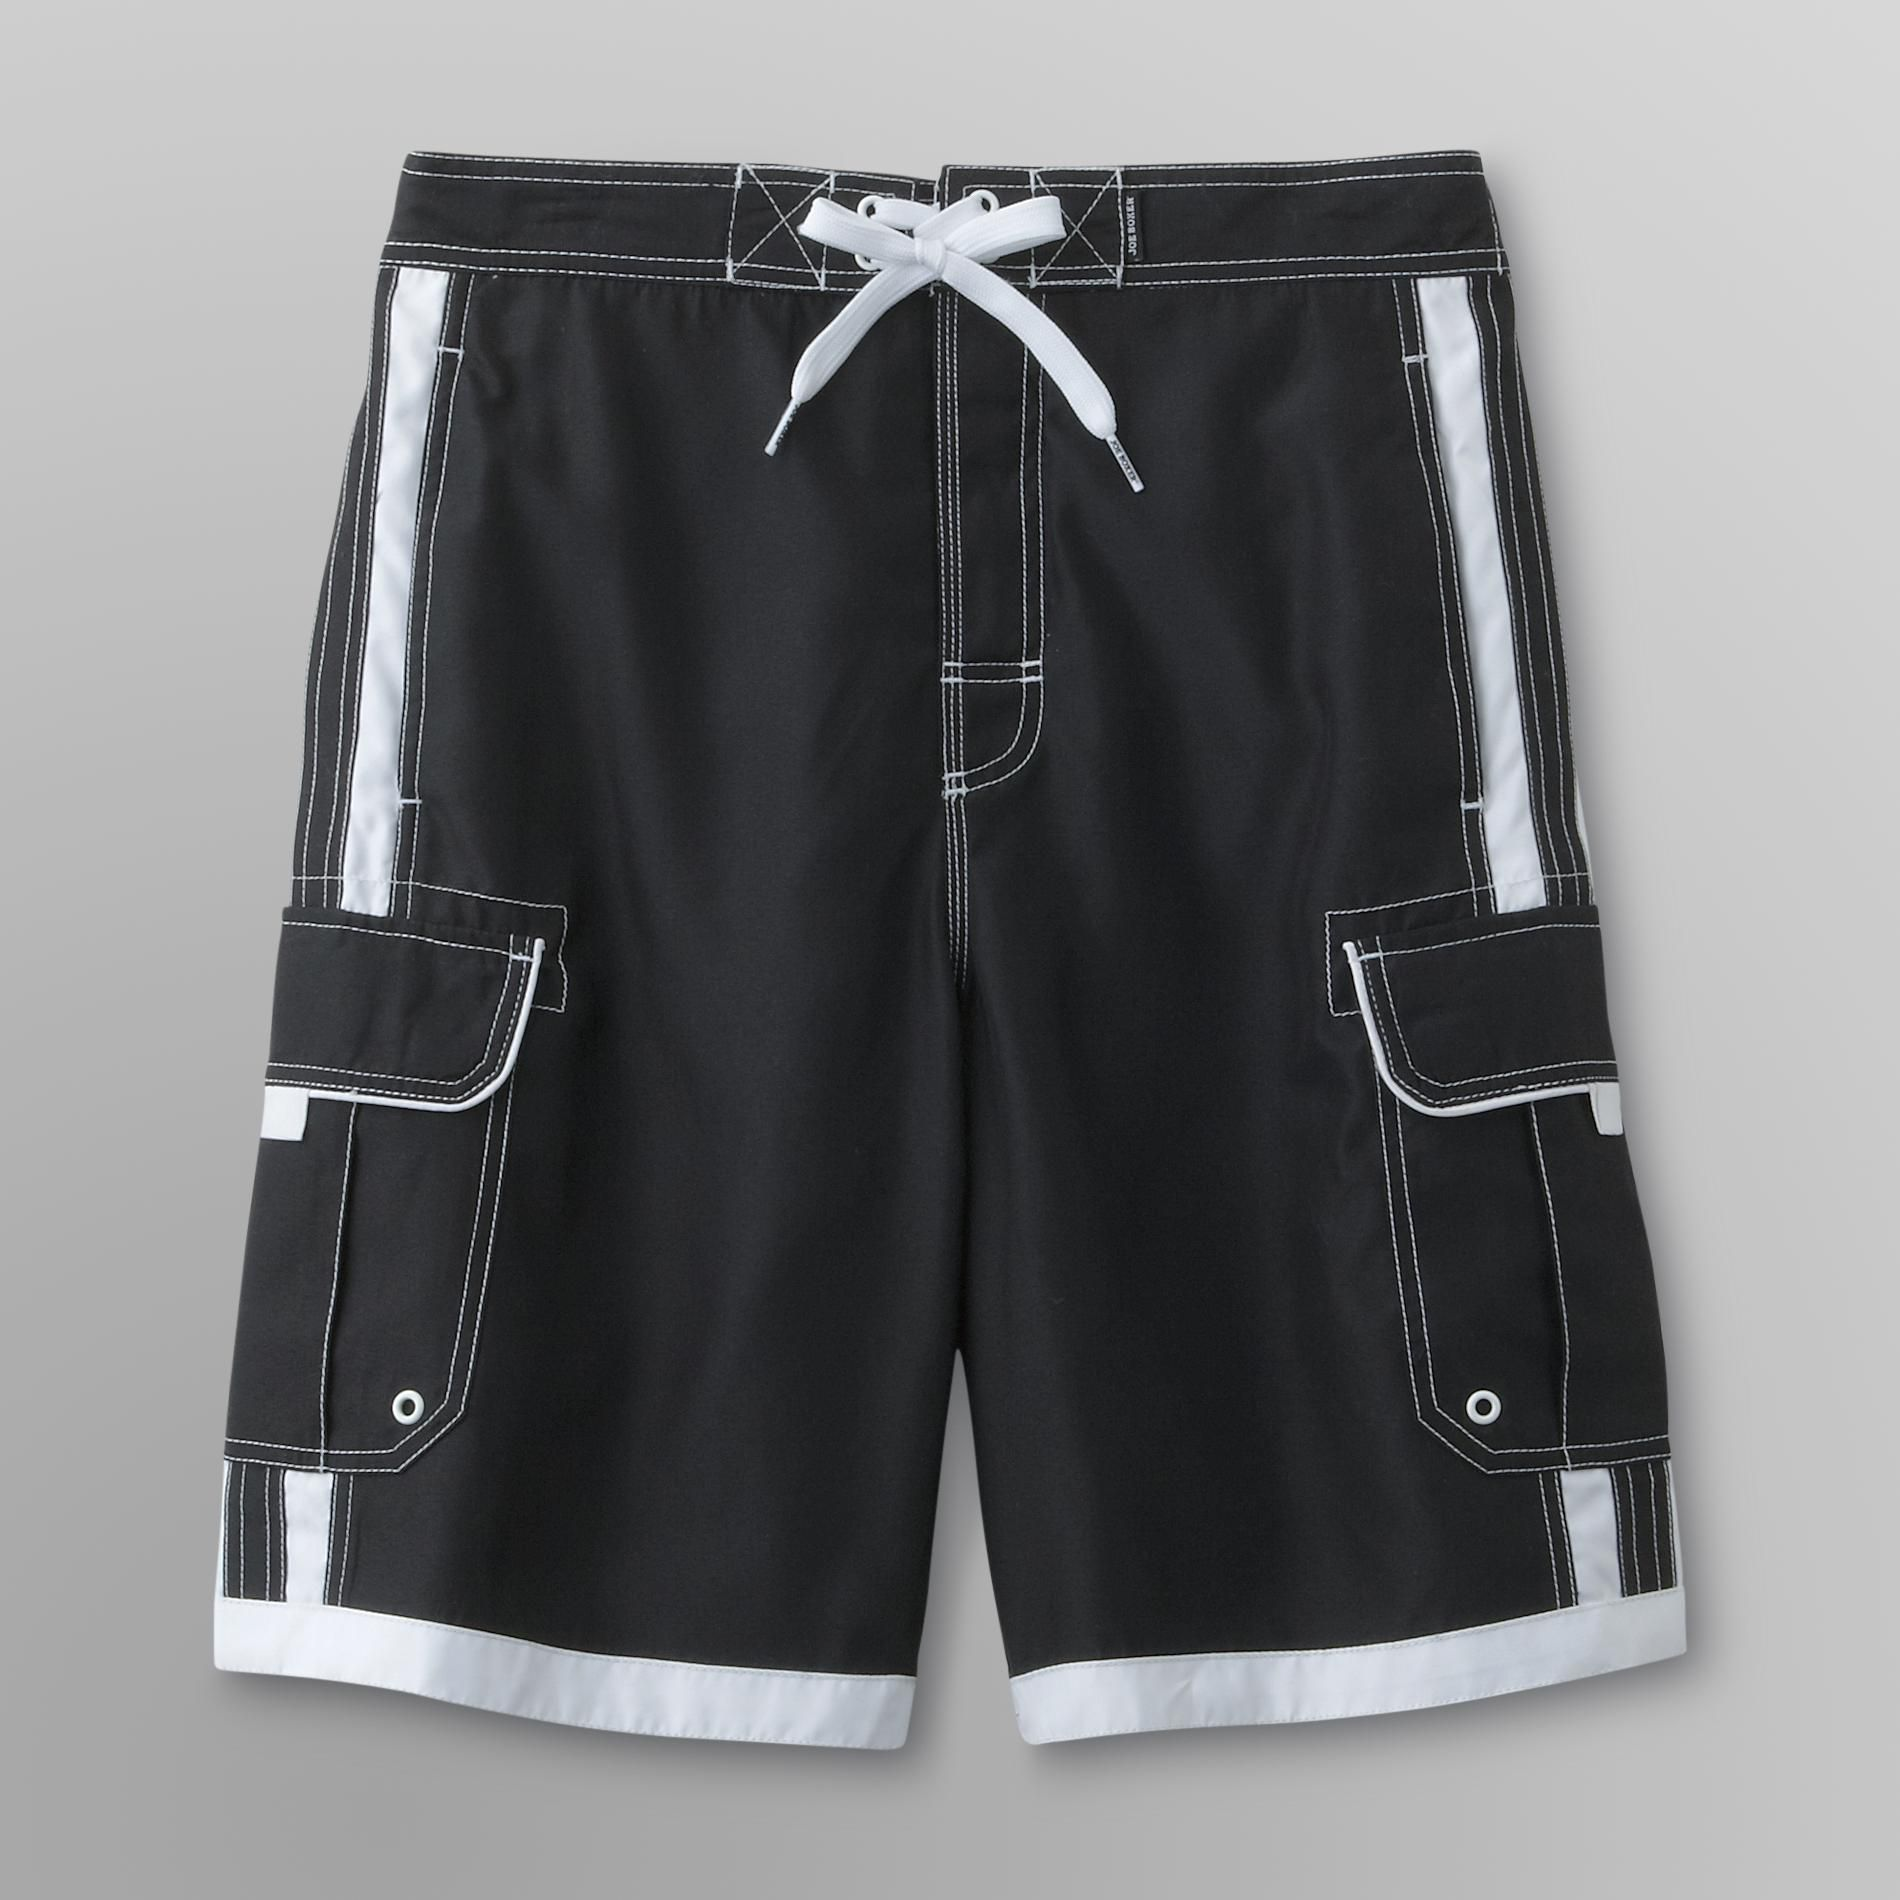 Joe Boxer Men's Colorblock Swim Trunks